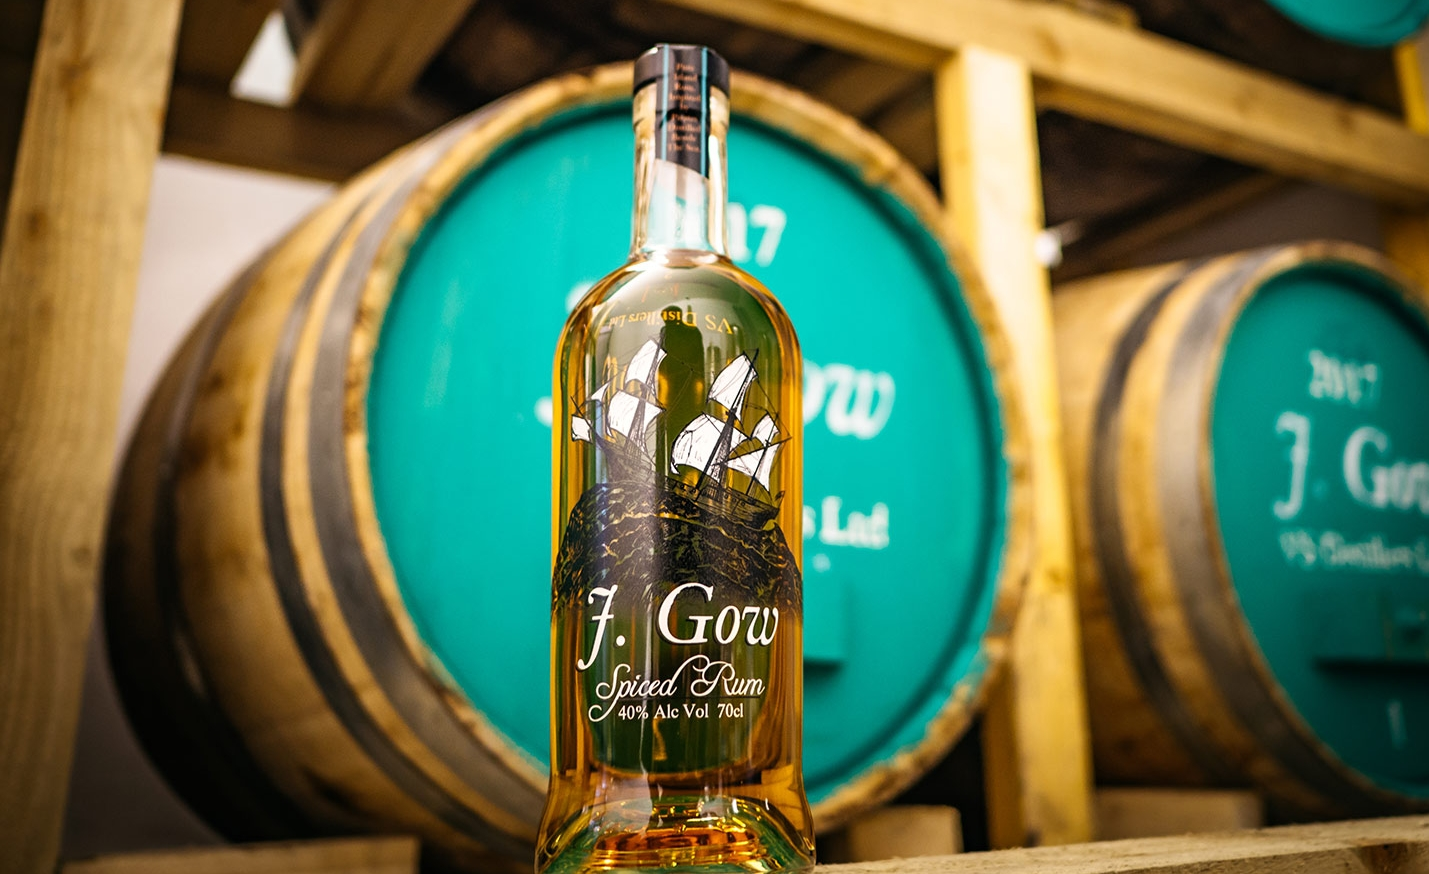 J Gow Spiced Orkney Rum in Barrel room